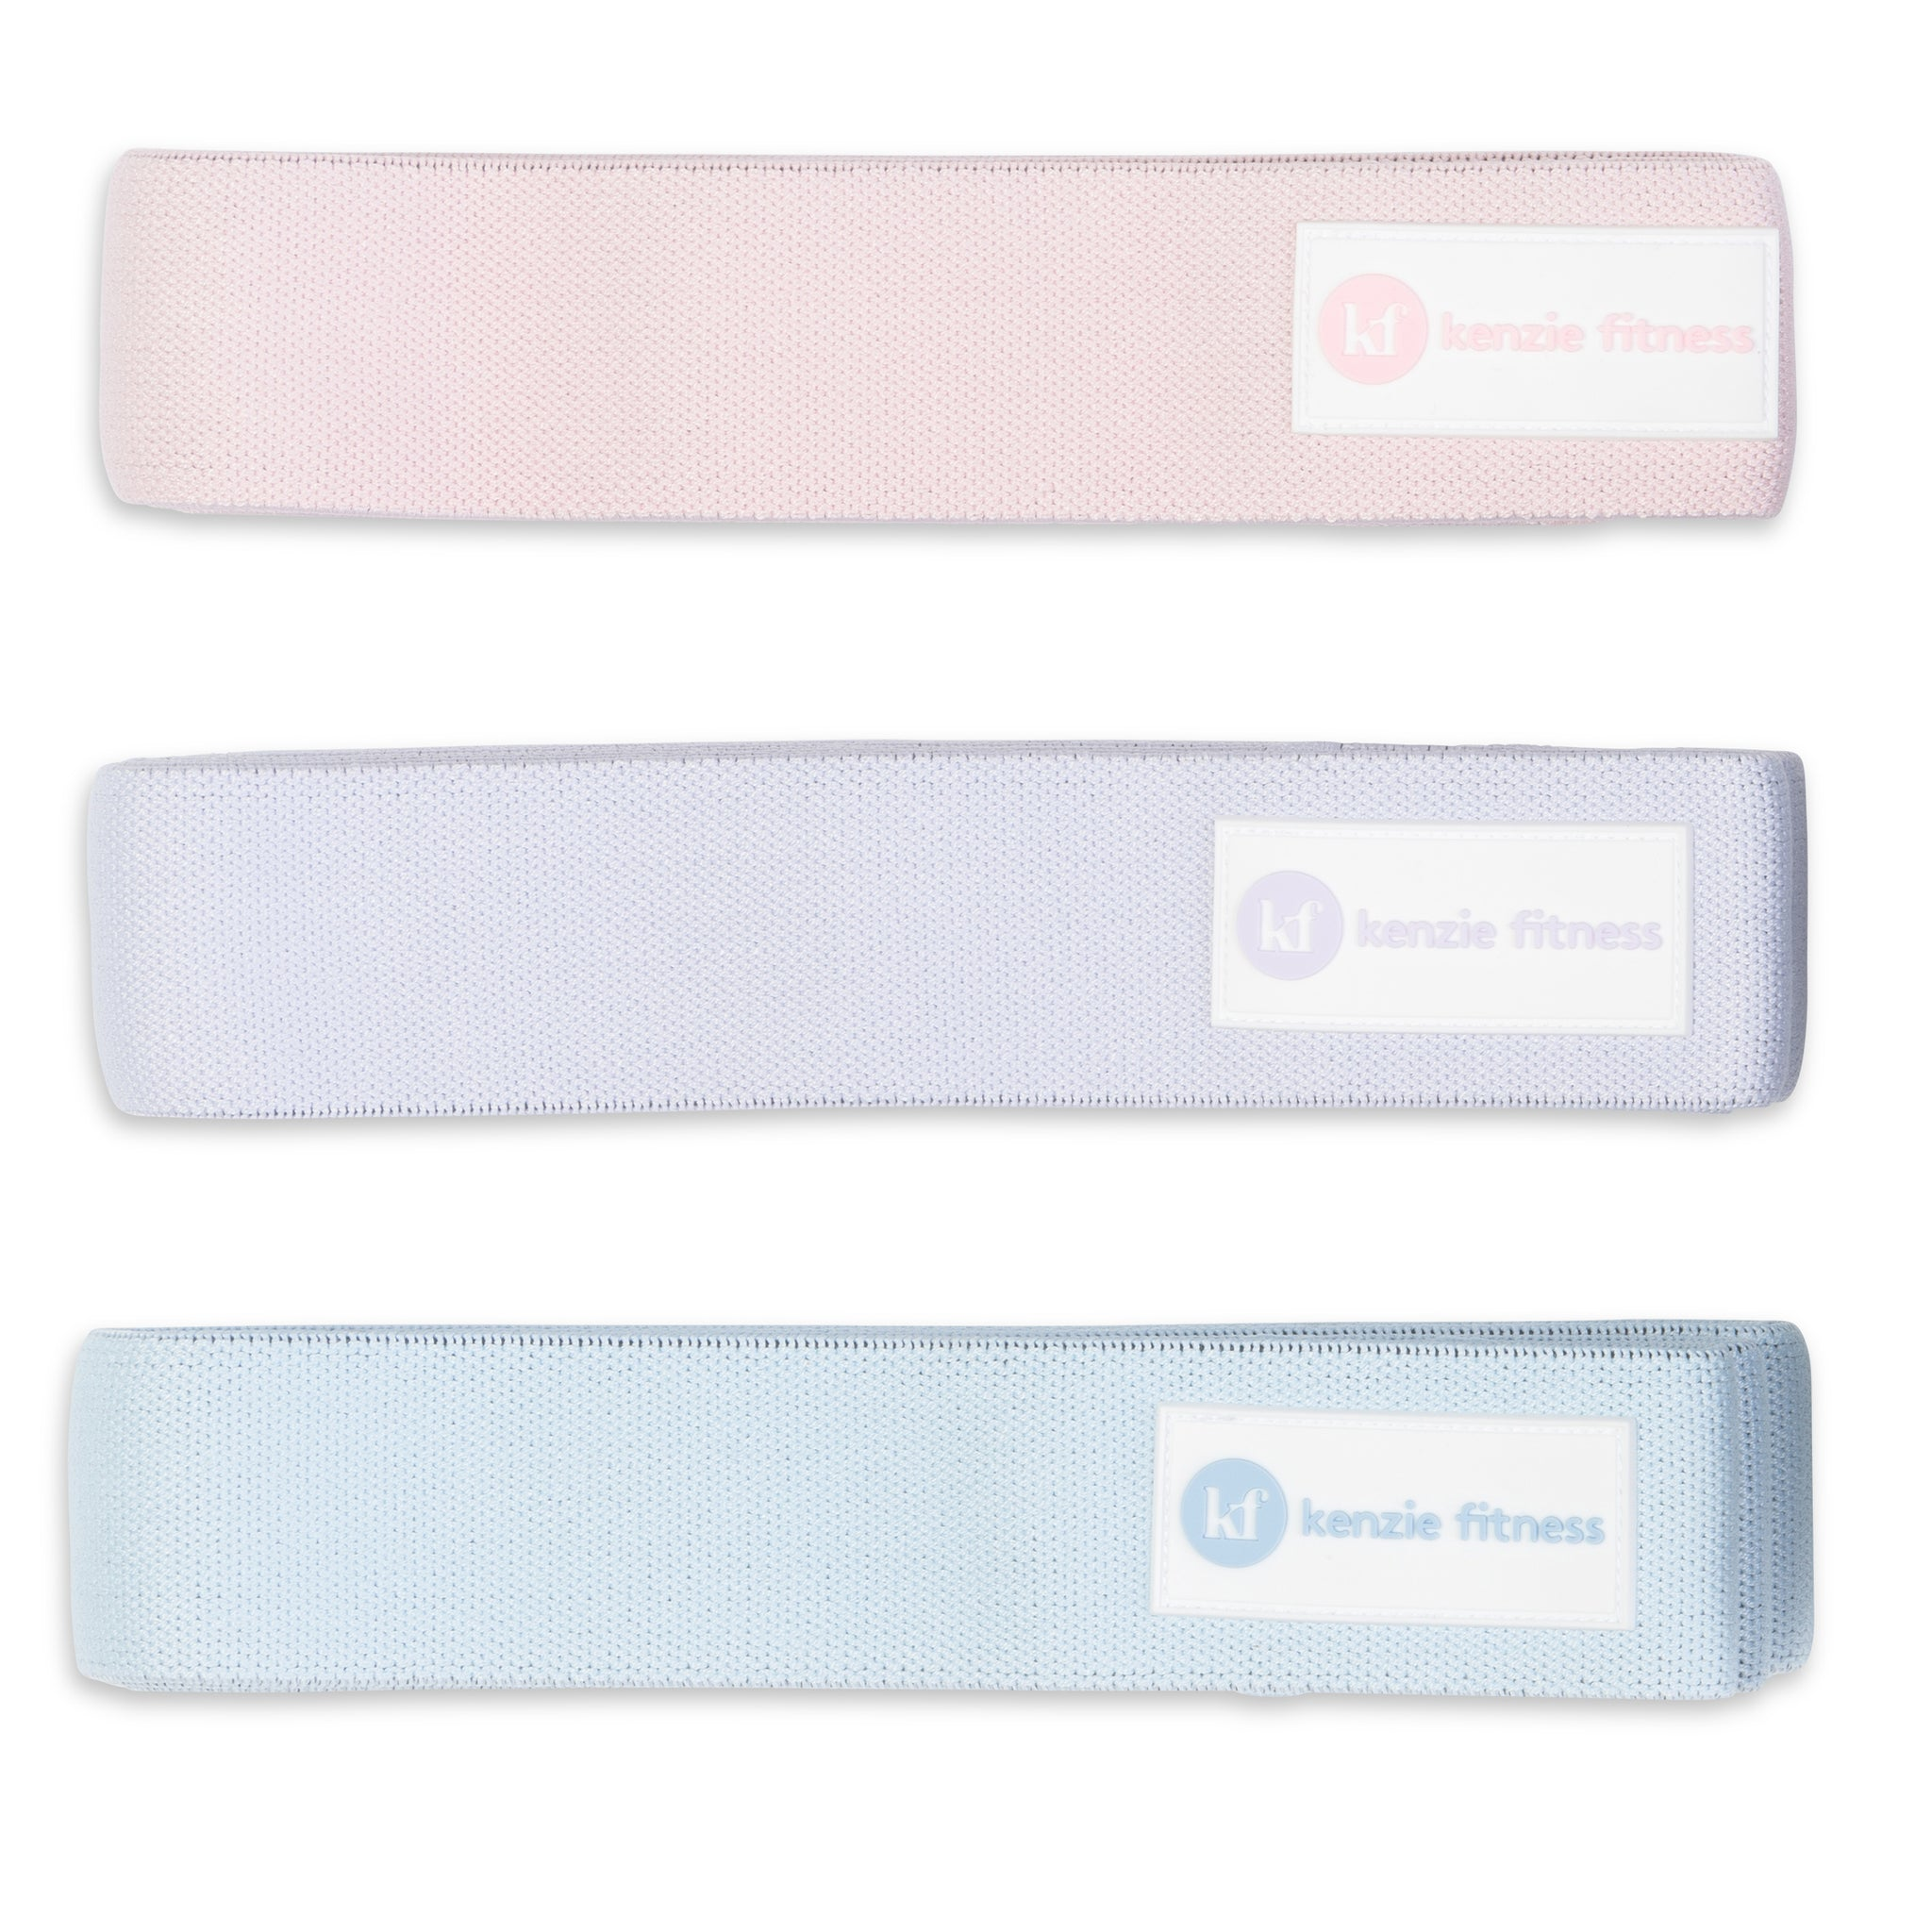 3 PACK LONG RESISTANCE BANDS